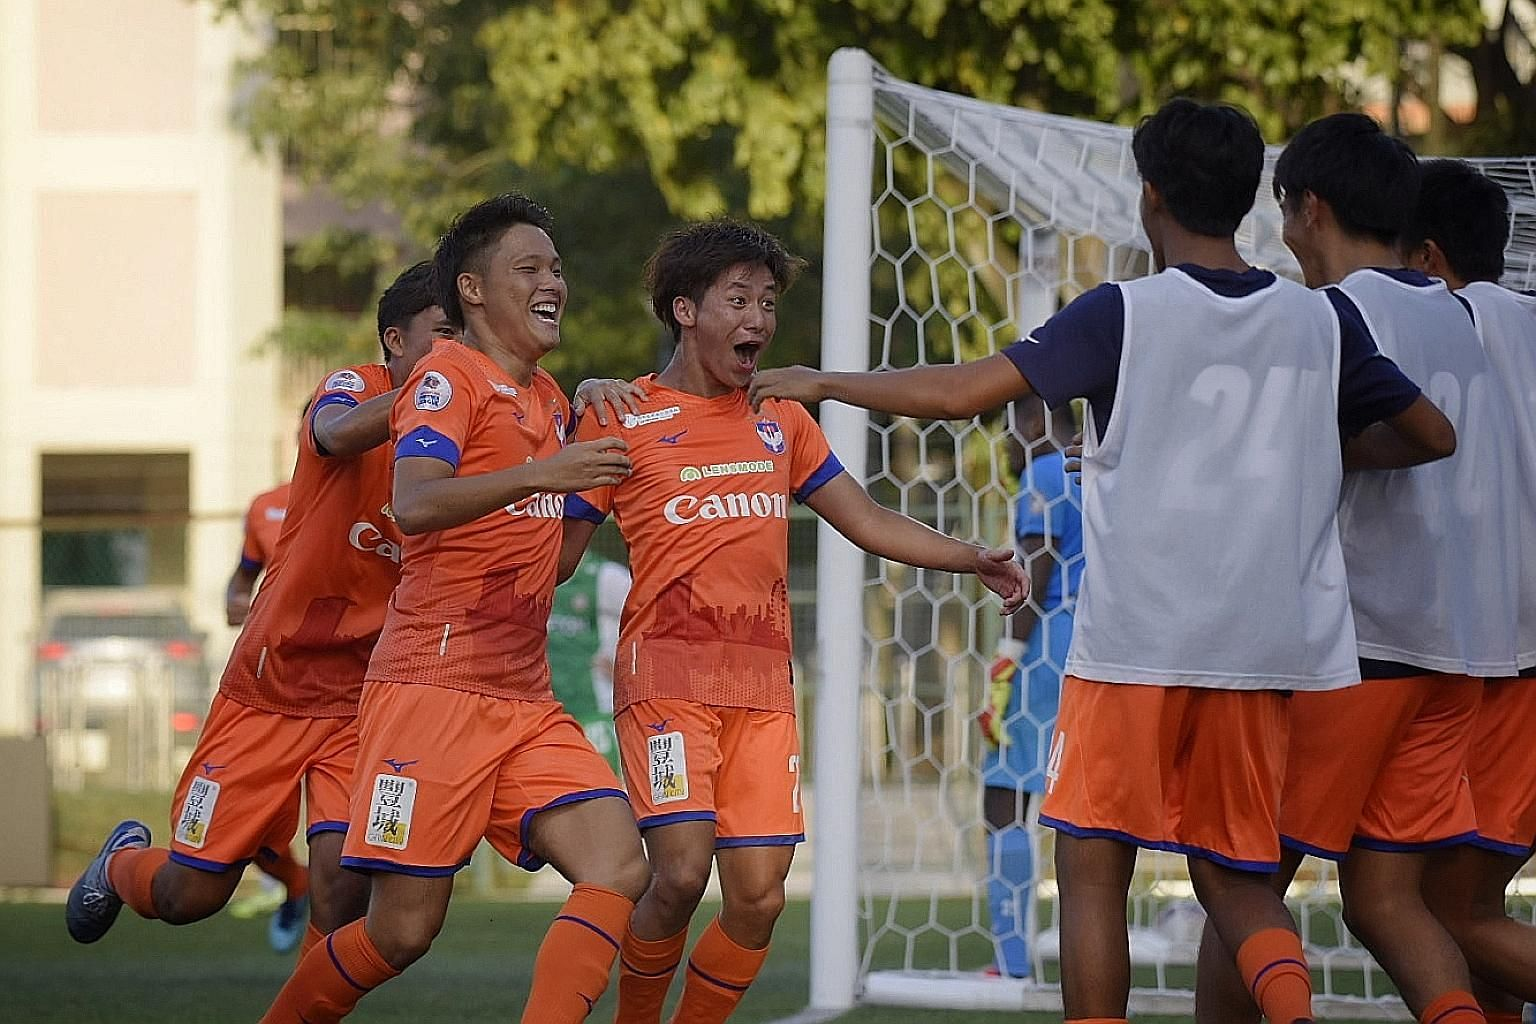 Albirex Niigata's Ryosuke Nagasawa is elated after scoring his team's second against Geylang in their Singapore Premier League opener. The Japanese side whipped their opponents 4-0. ST PHOTO: MARK CHEONG